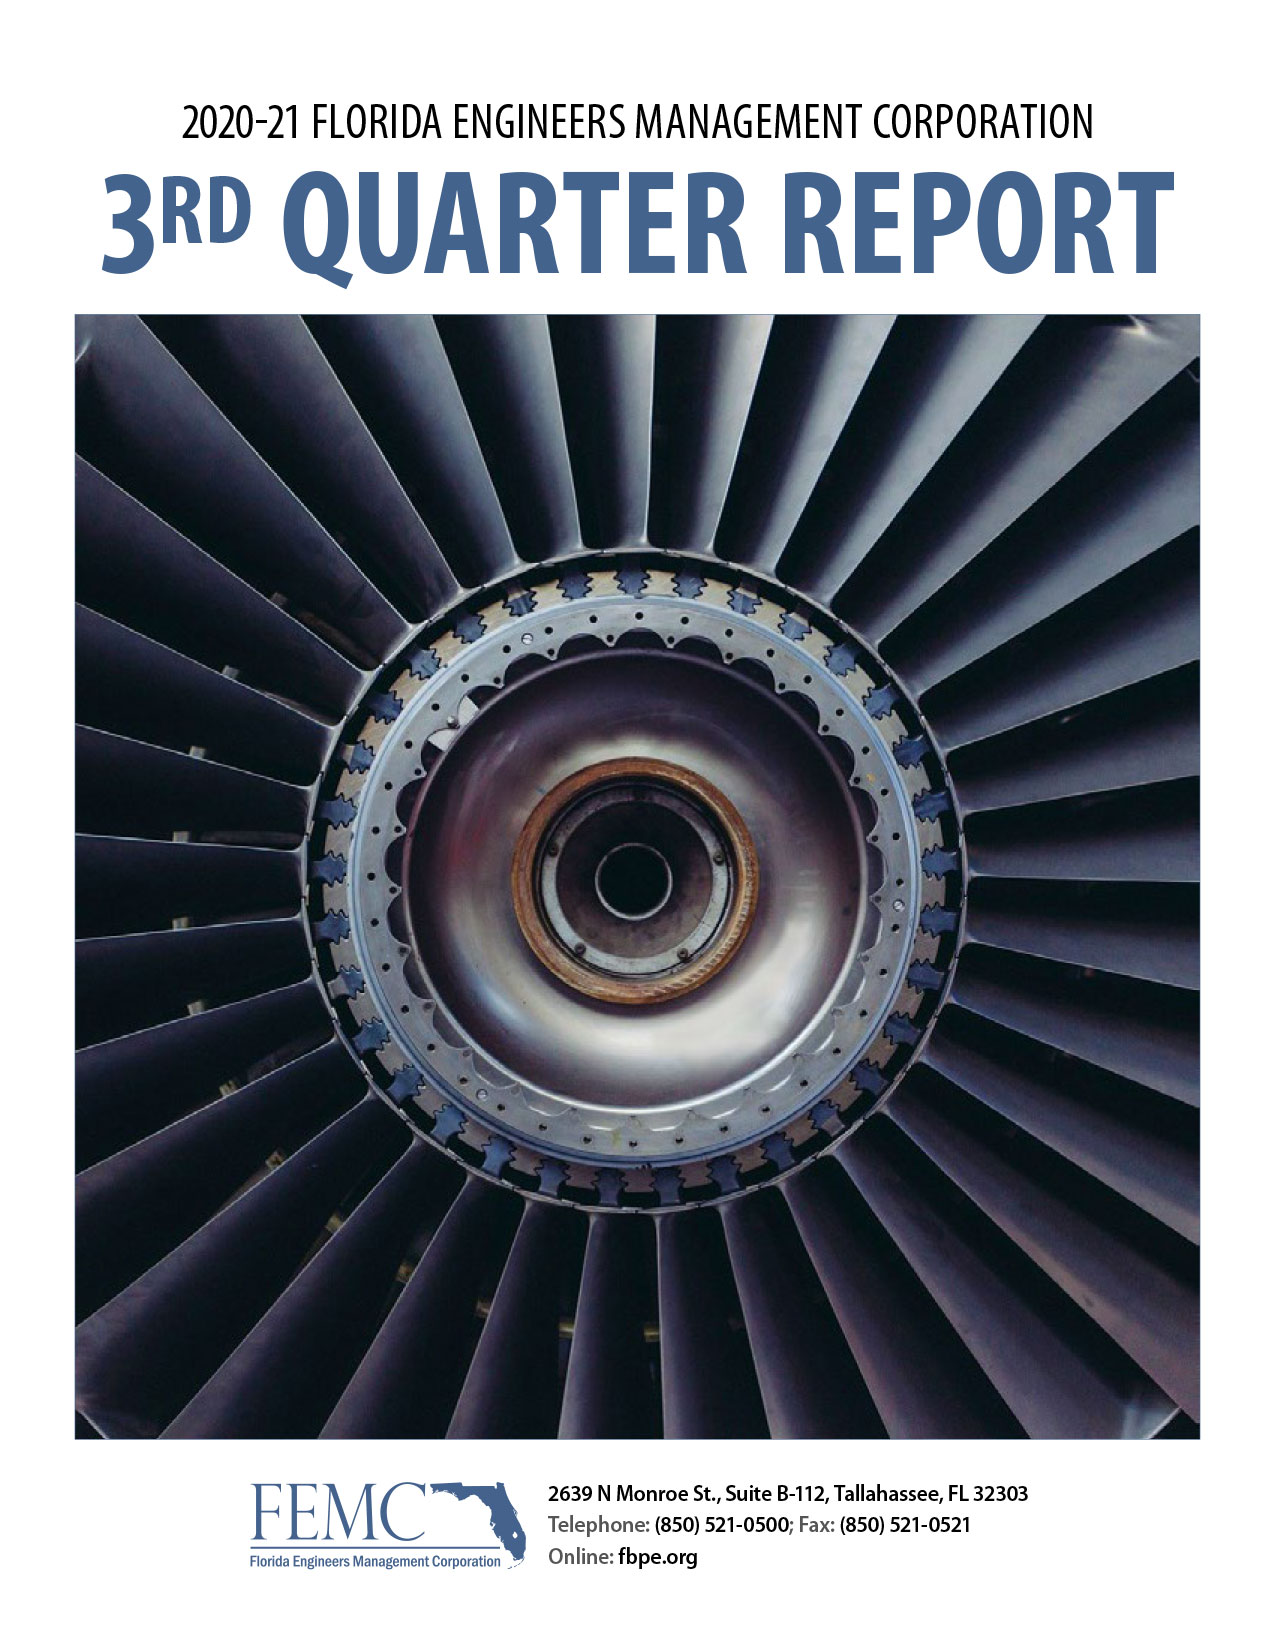 Cover of the 2020-21 Florida Engineers Management Corporation 3rd Quarter Report